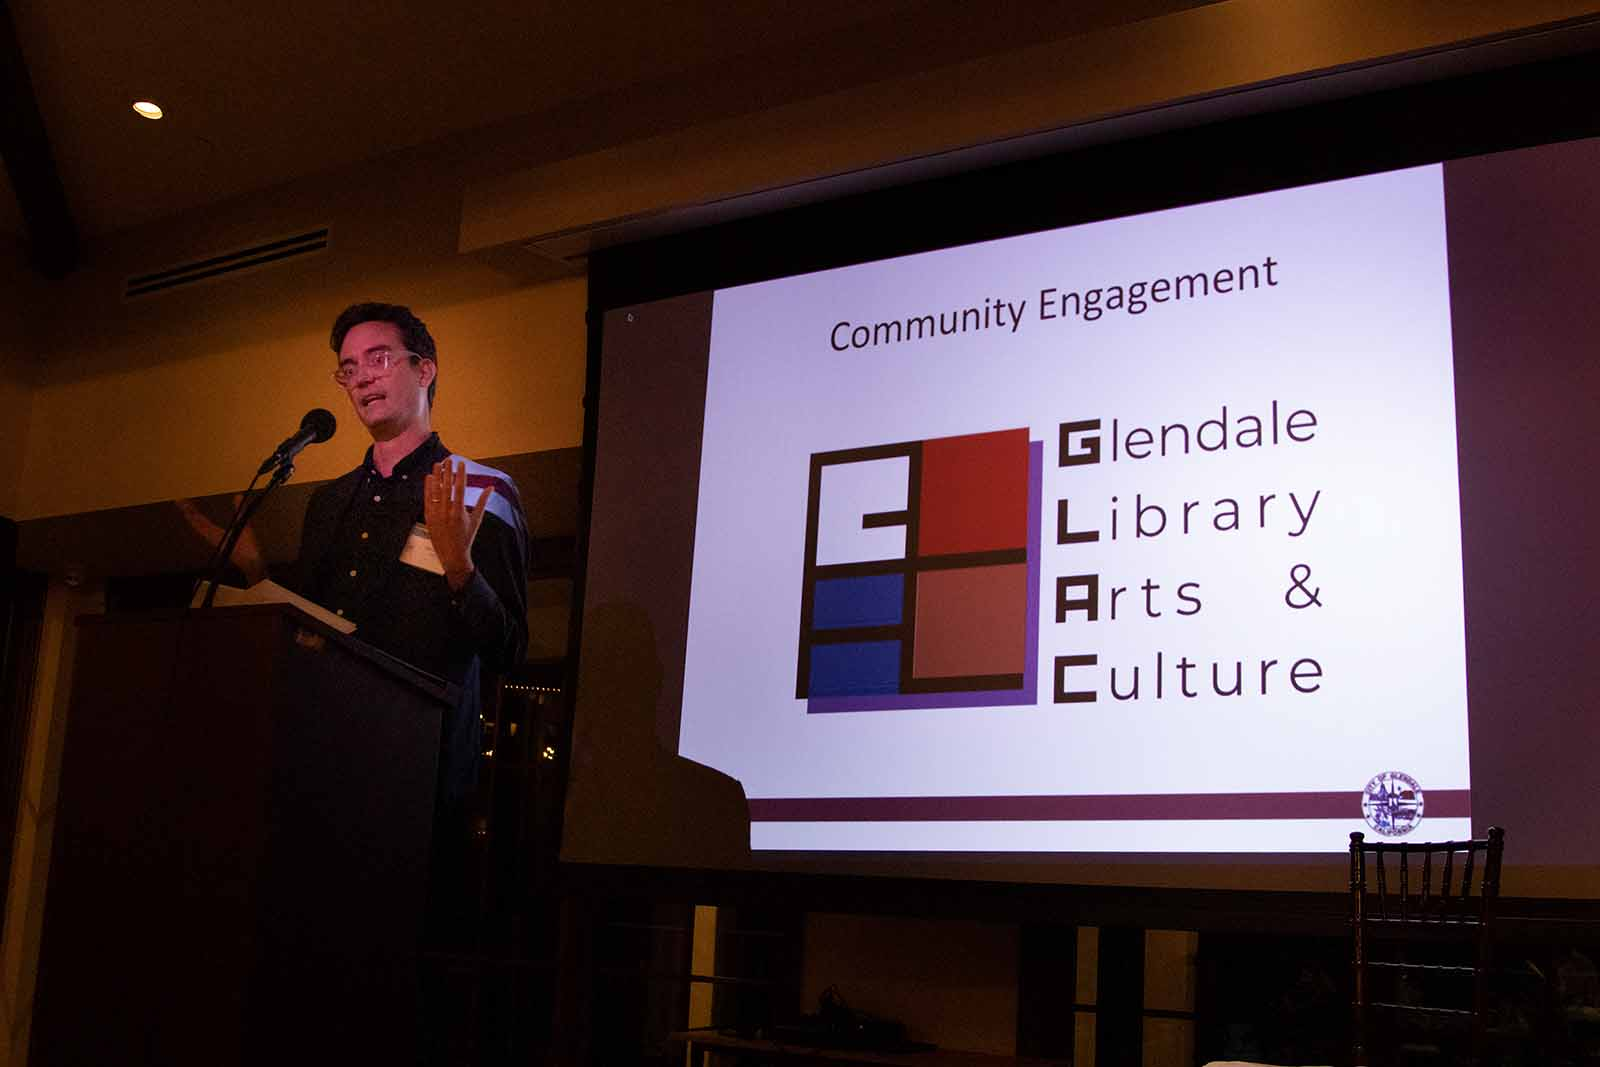 Glendale Library Community Engagement